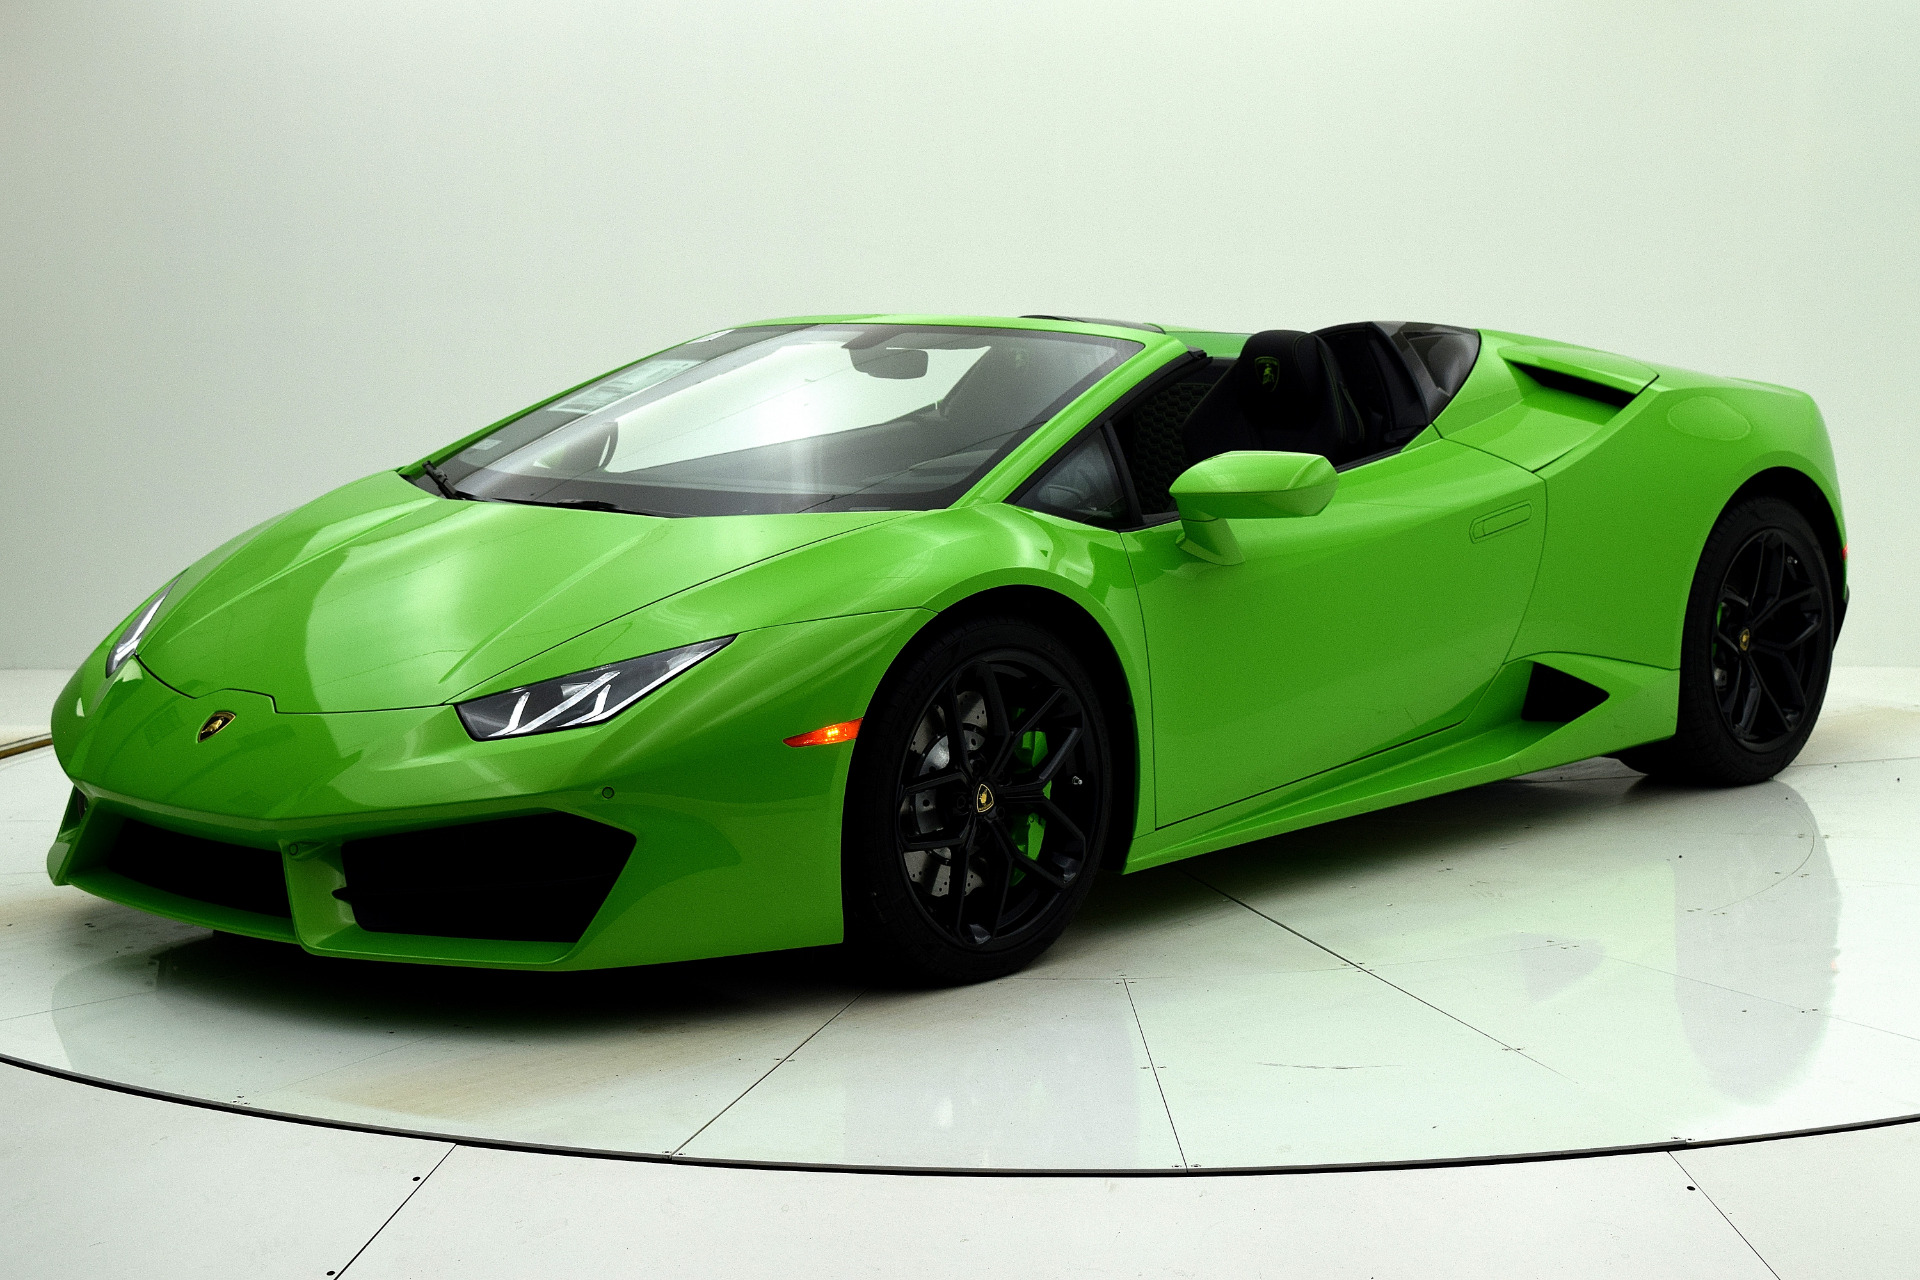 New 2019 Lamborghini Huracan Lp580 2 Spyder For Sale 249 879